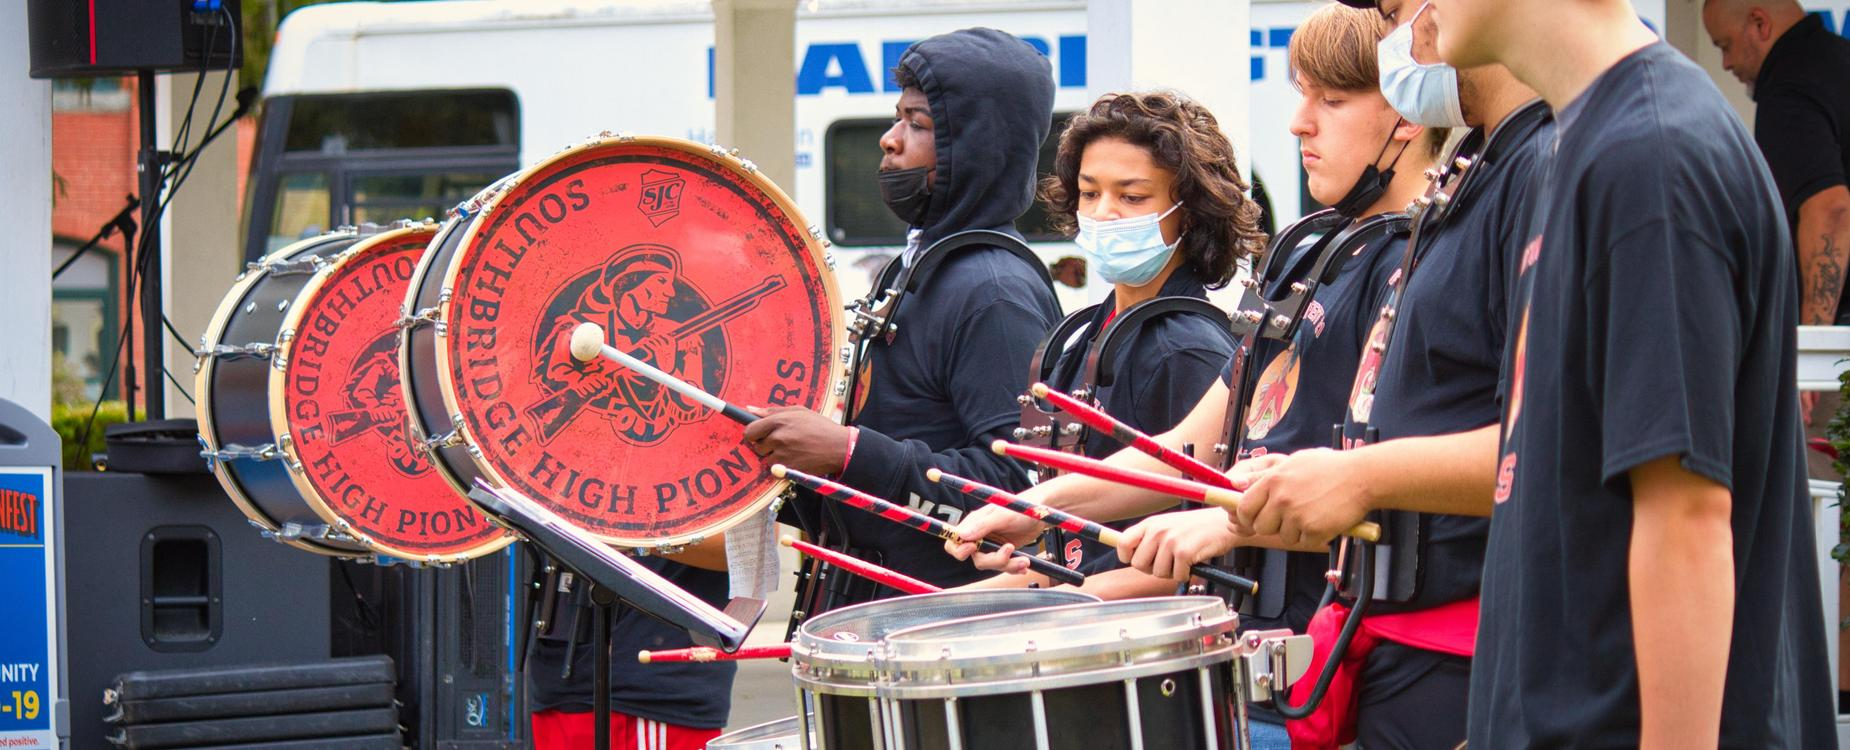 The Southbridge High School Band performs at Autumnfest